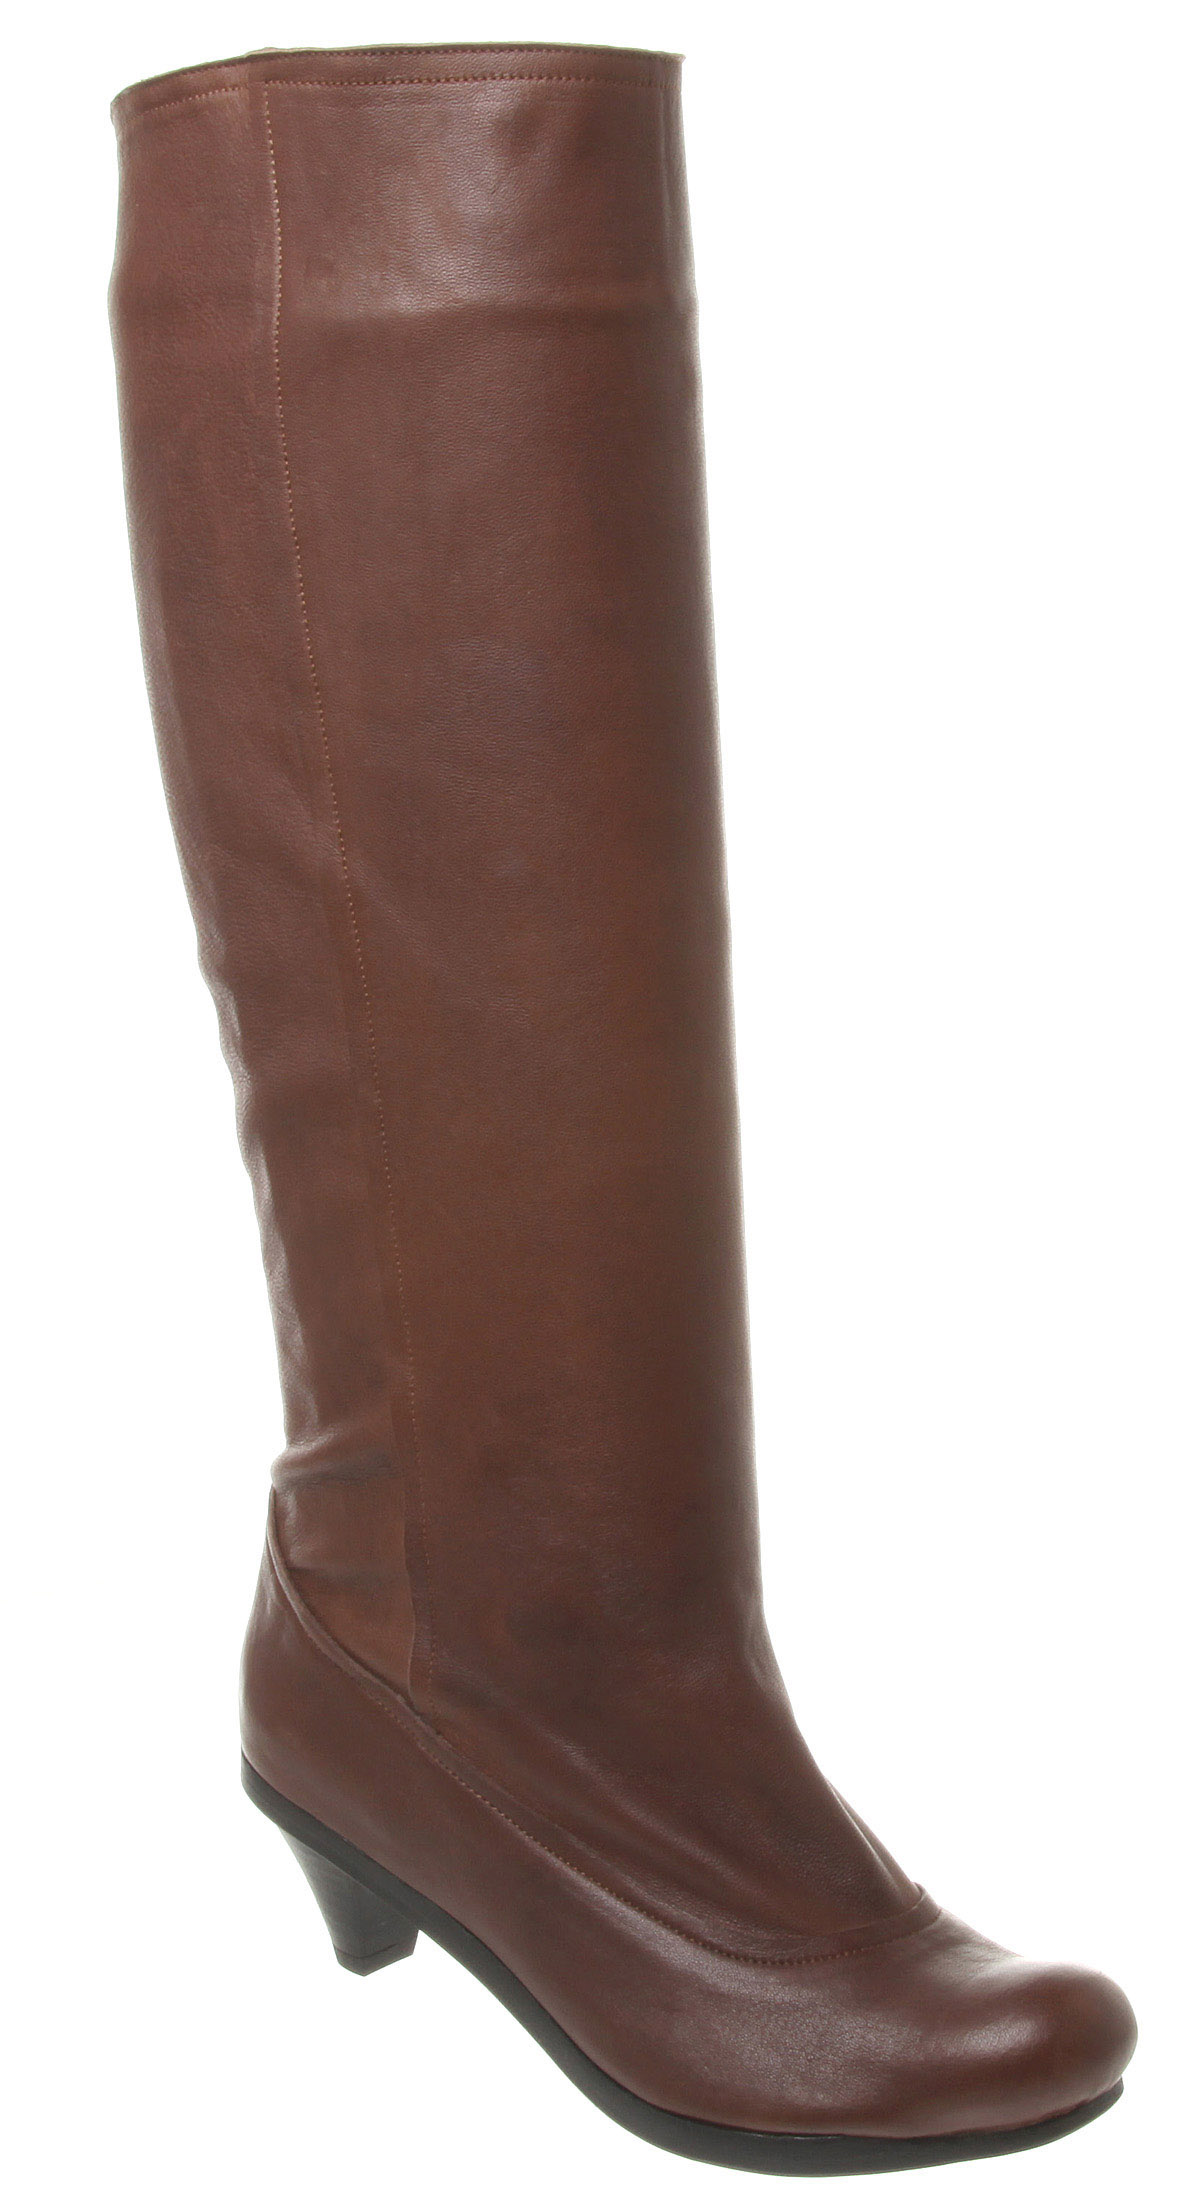 Womens-Tn29-Low-Heel-Knee-High-Boot-Choc-Leather